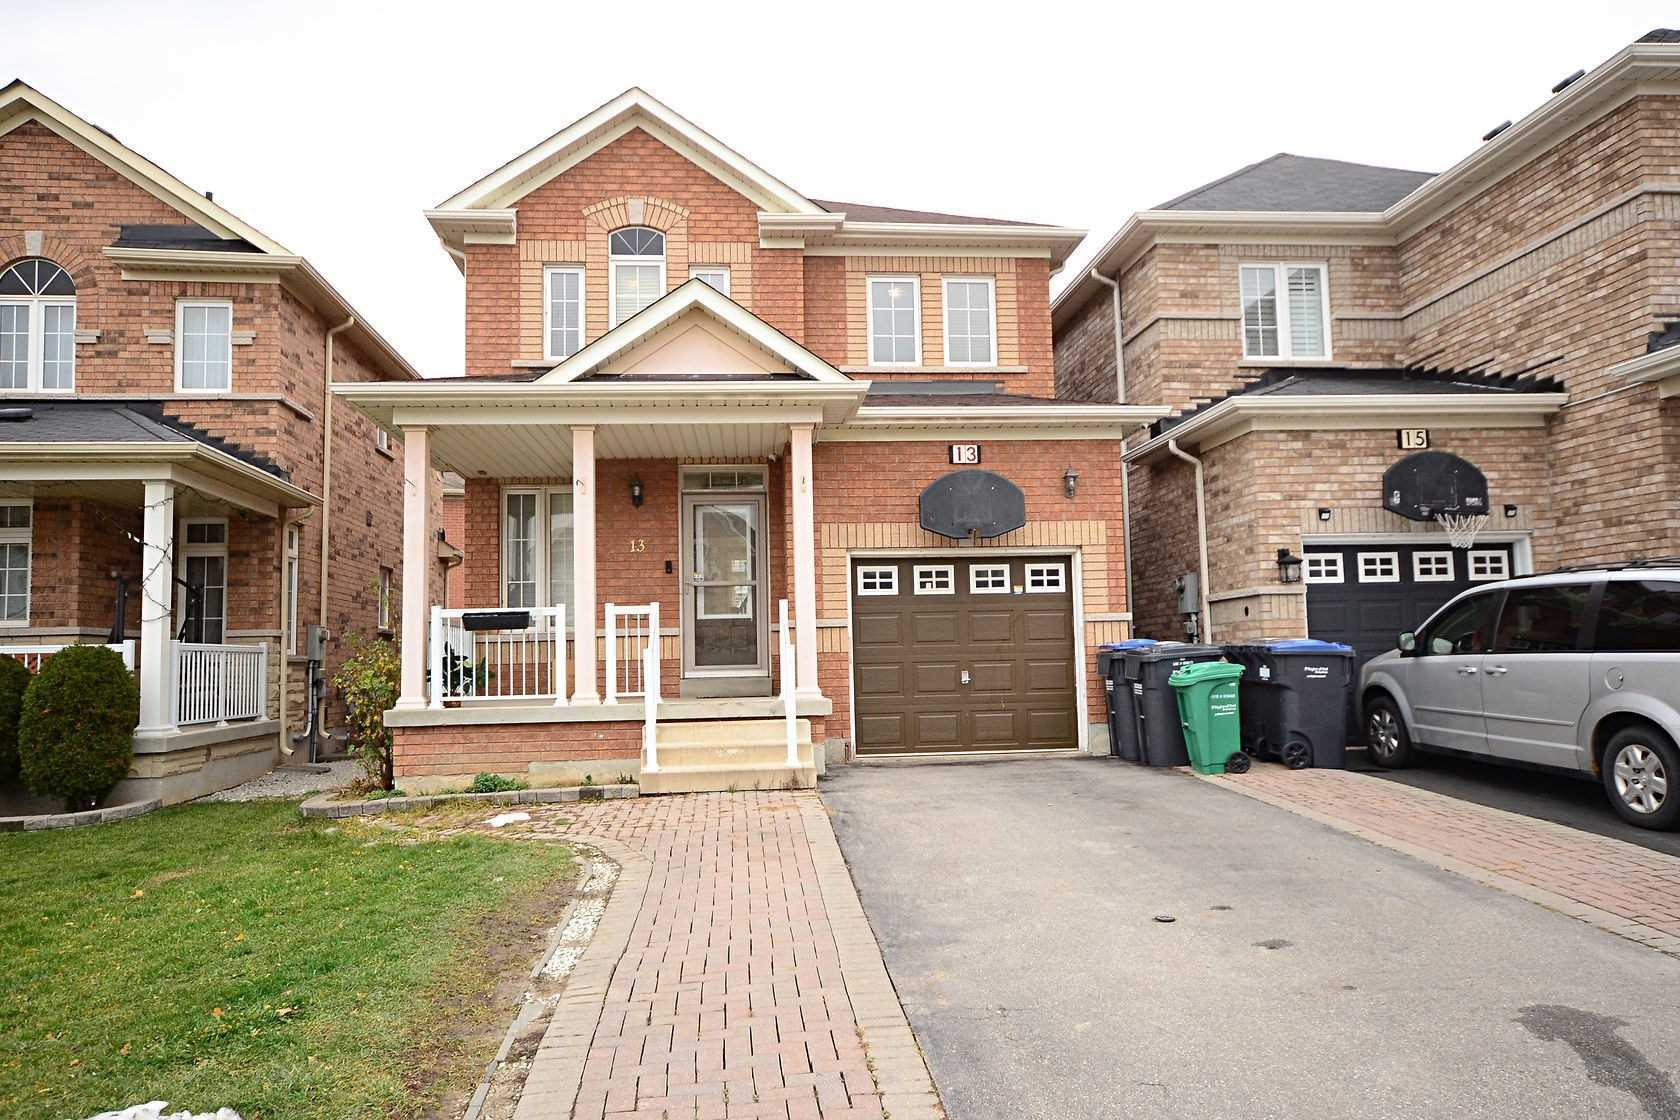 13 Fishing Cres - W5002330- $798,000